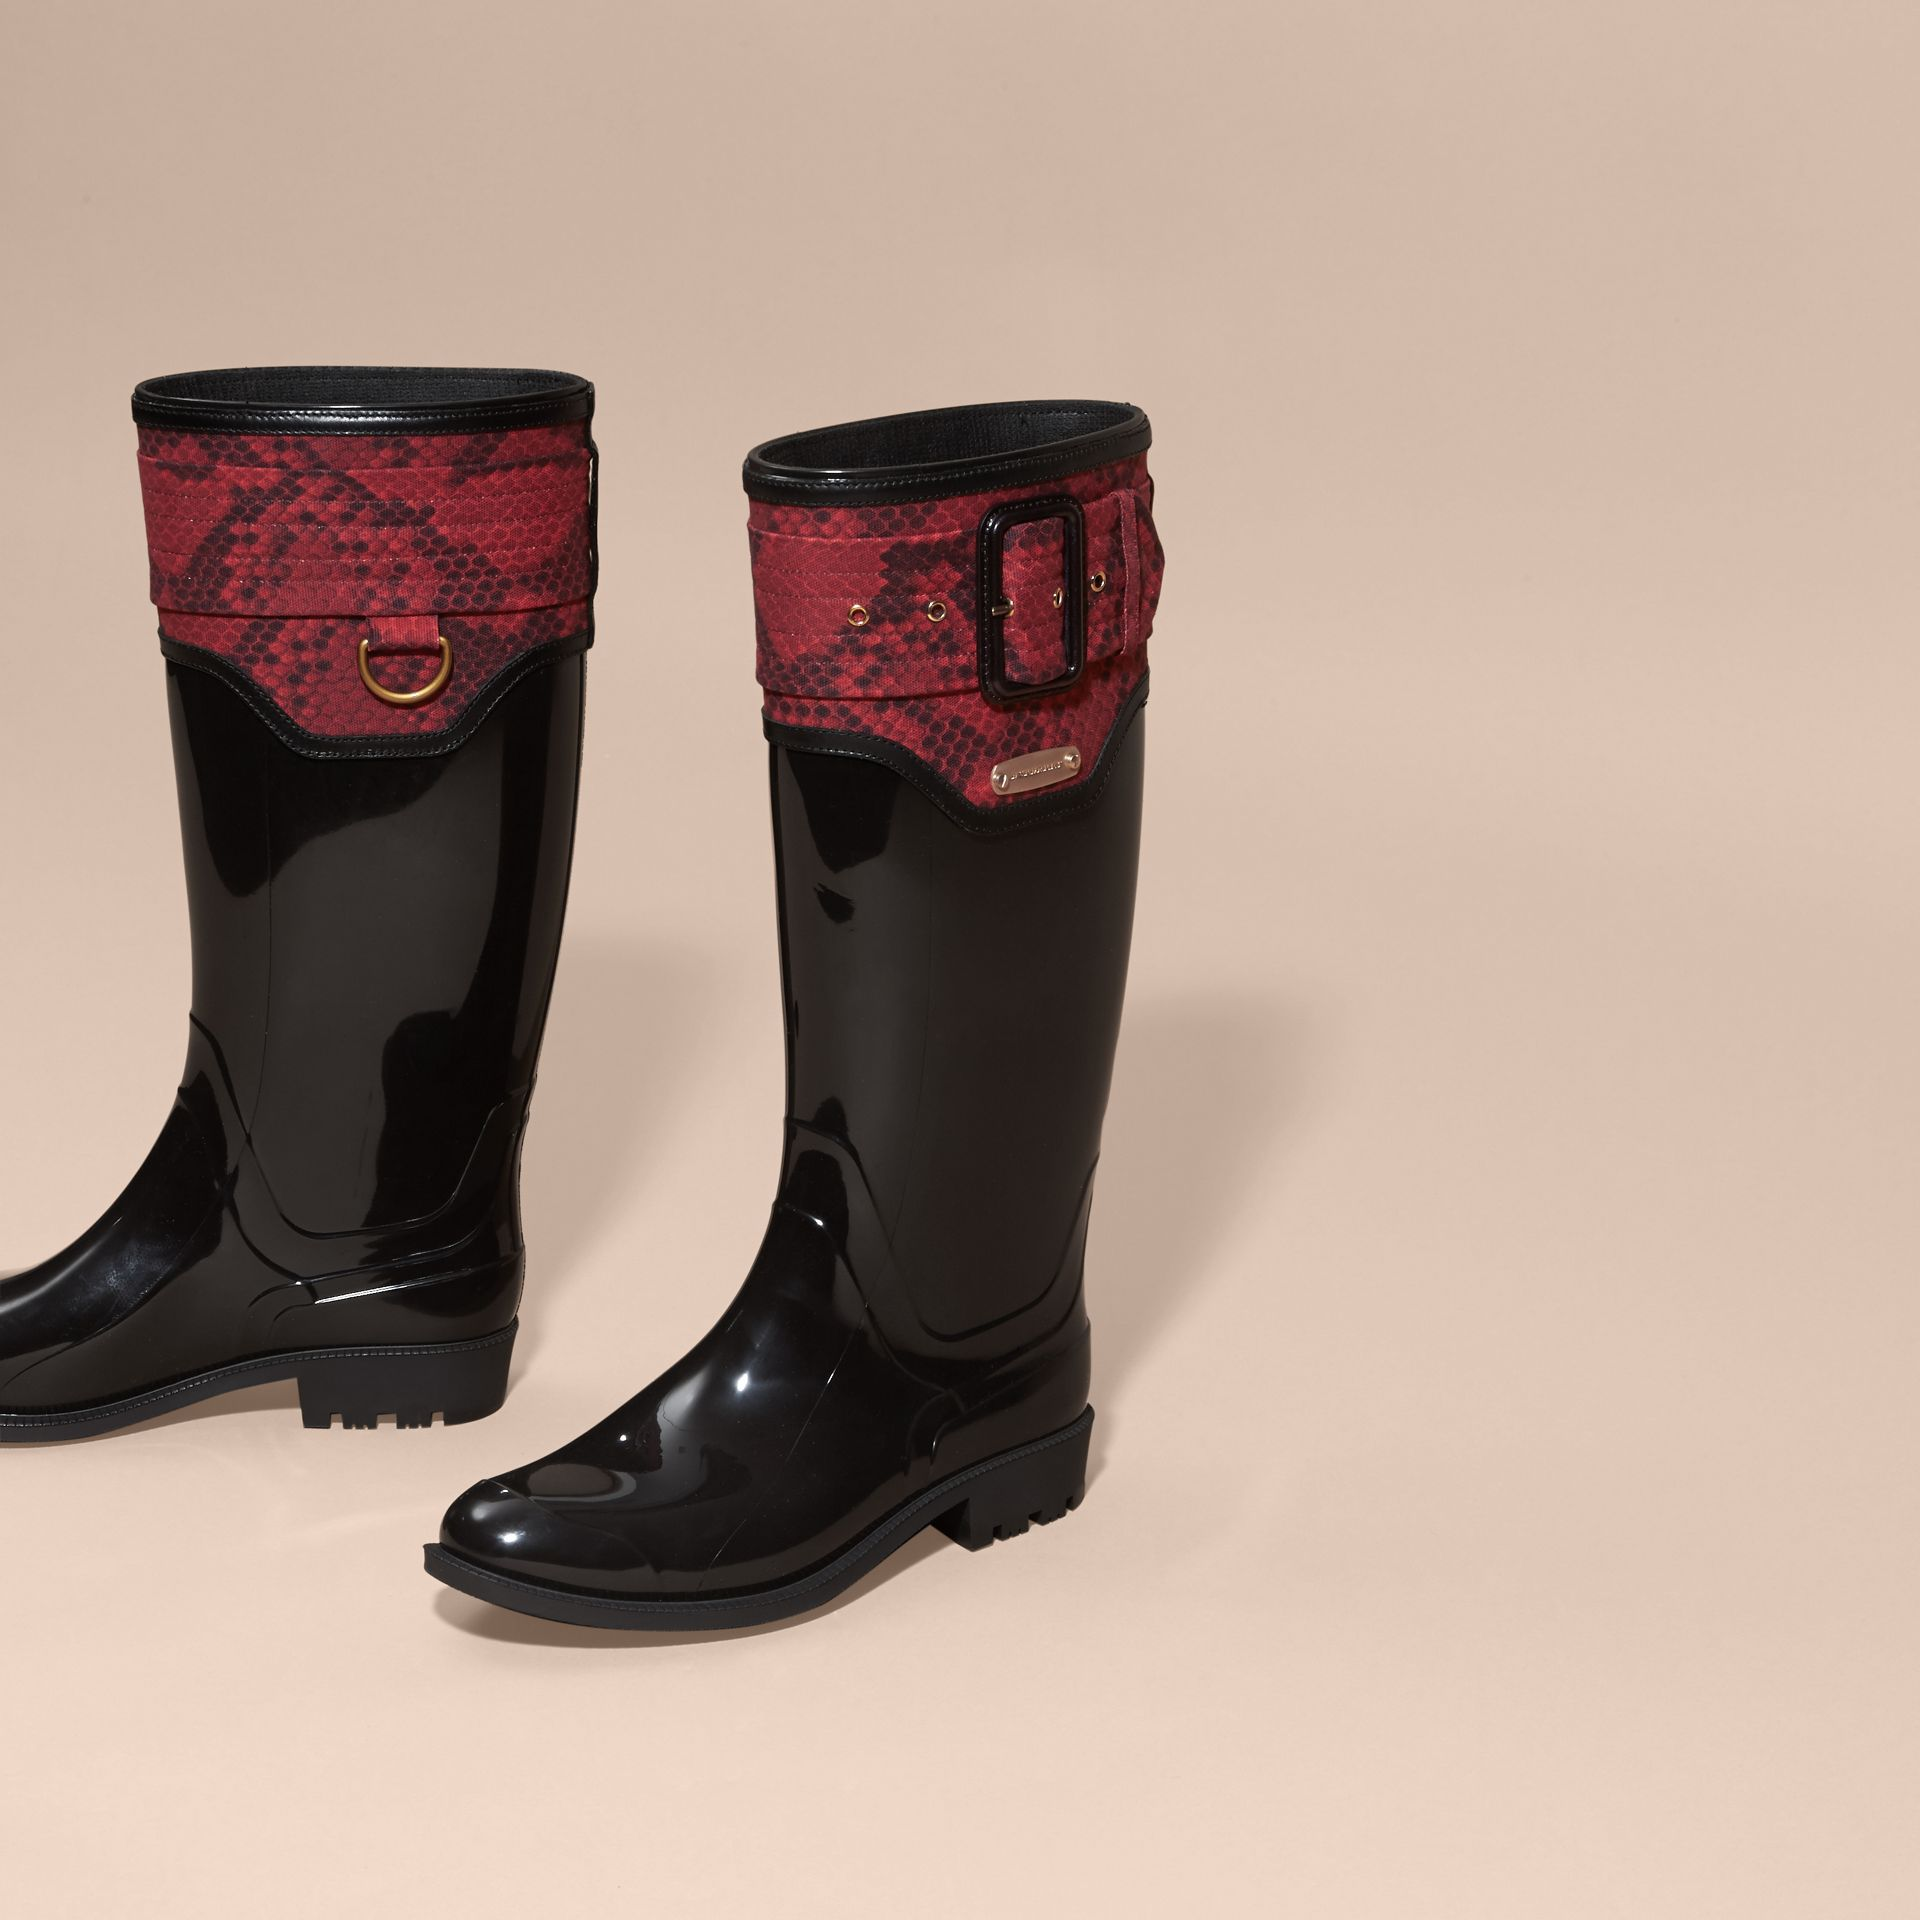 Black/windsor red Python Print Detail Rain Boots Black/windsor Red - gallery image 2